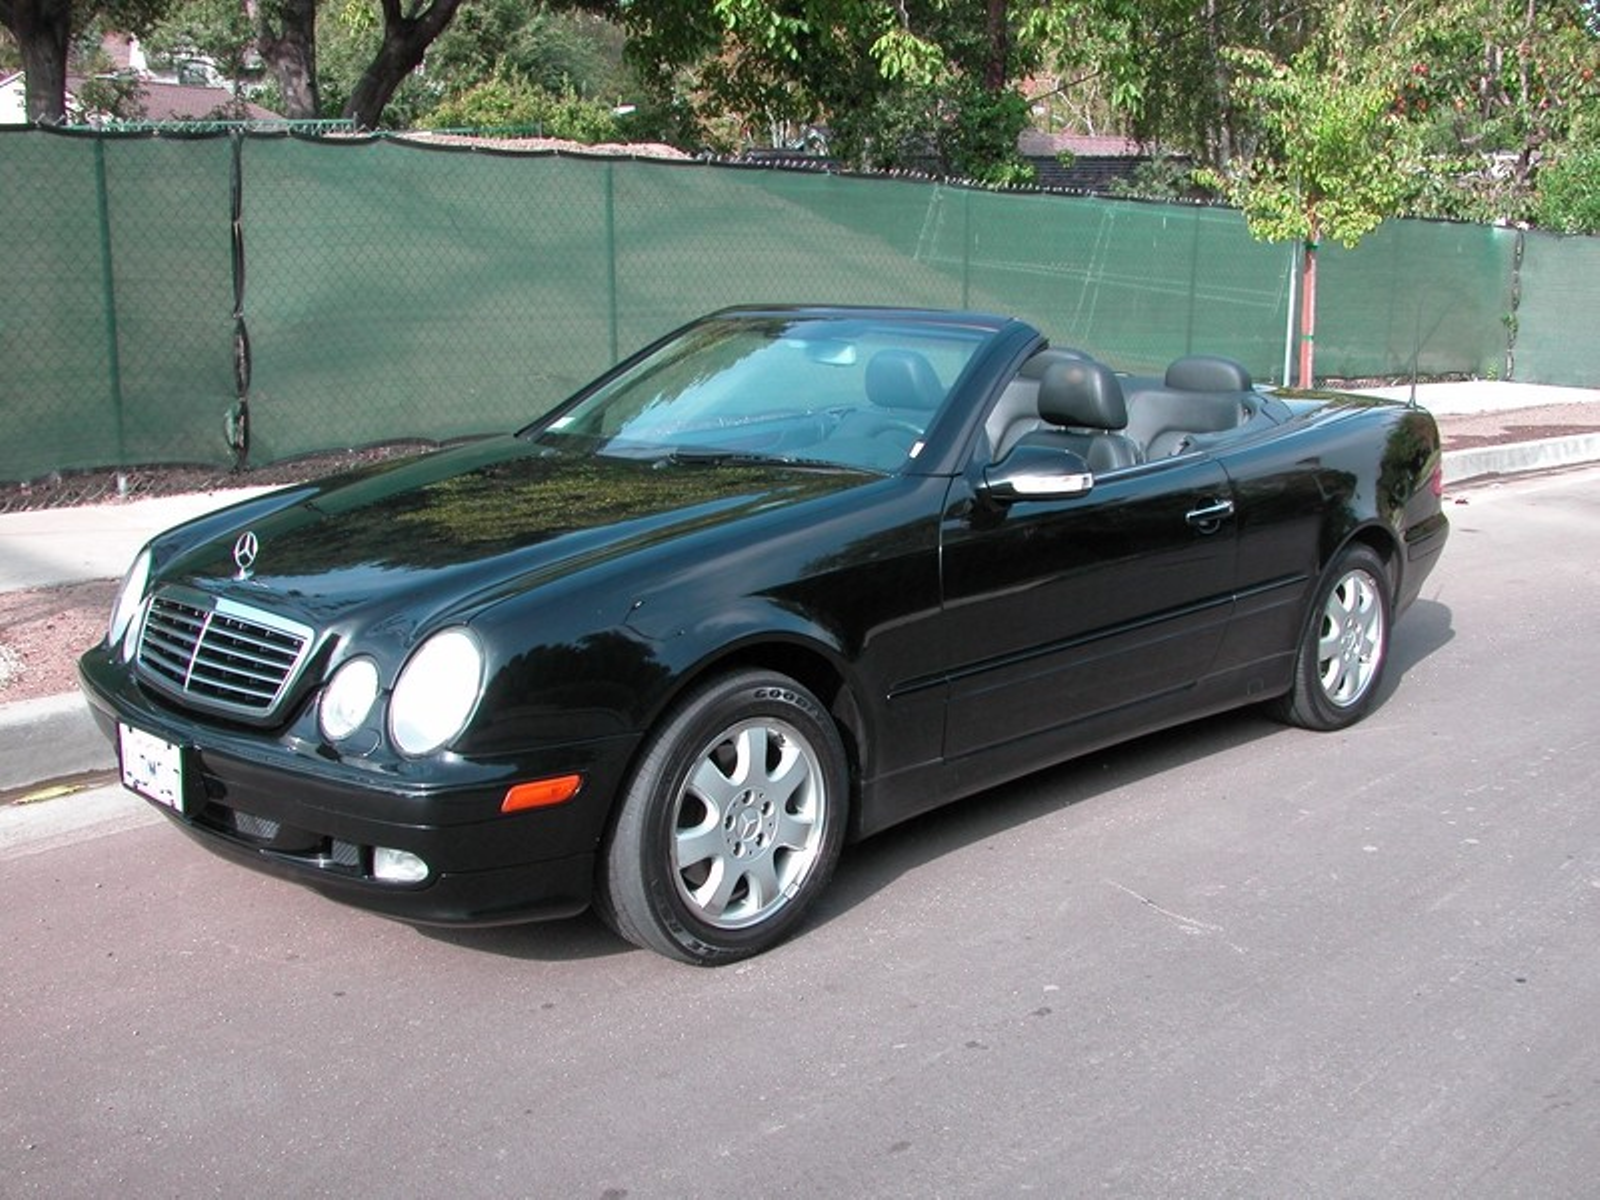 2000 mercedes-benz clk320 convertible one owner super clean city